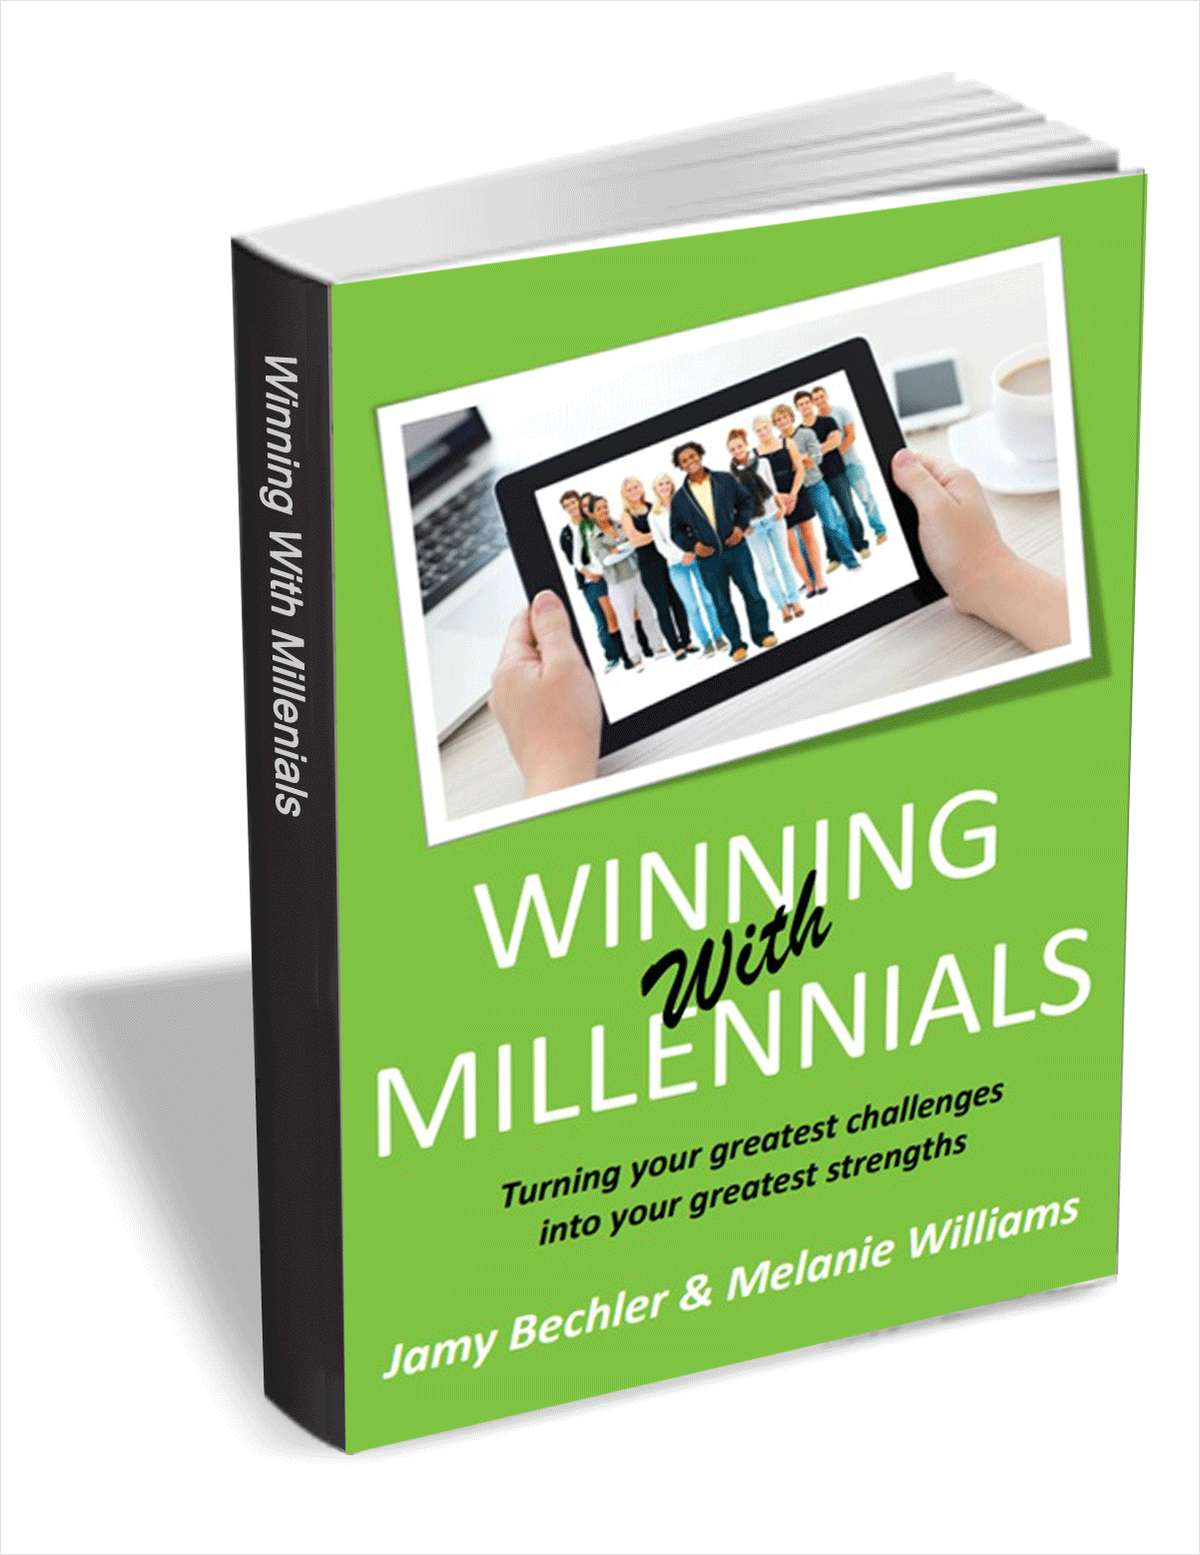 Winning With Millennials - Turning Your Greatest Challenges into Your Greatest Strengths